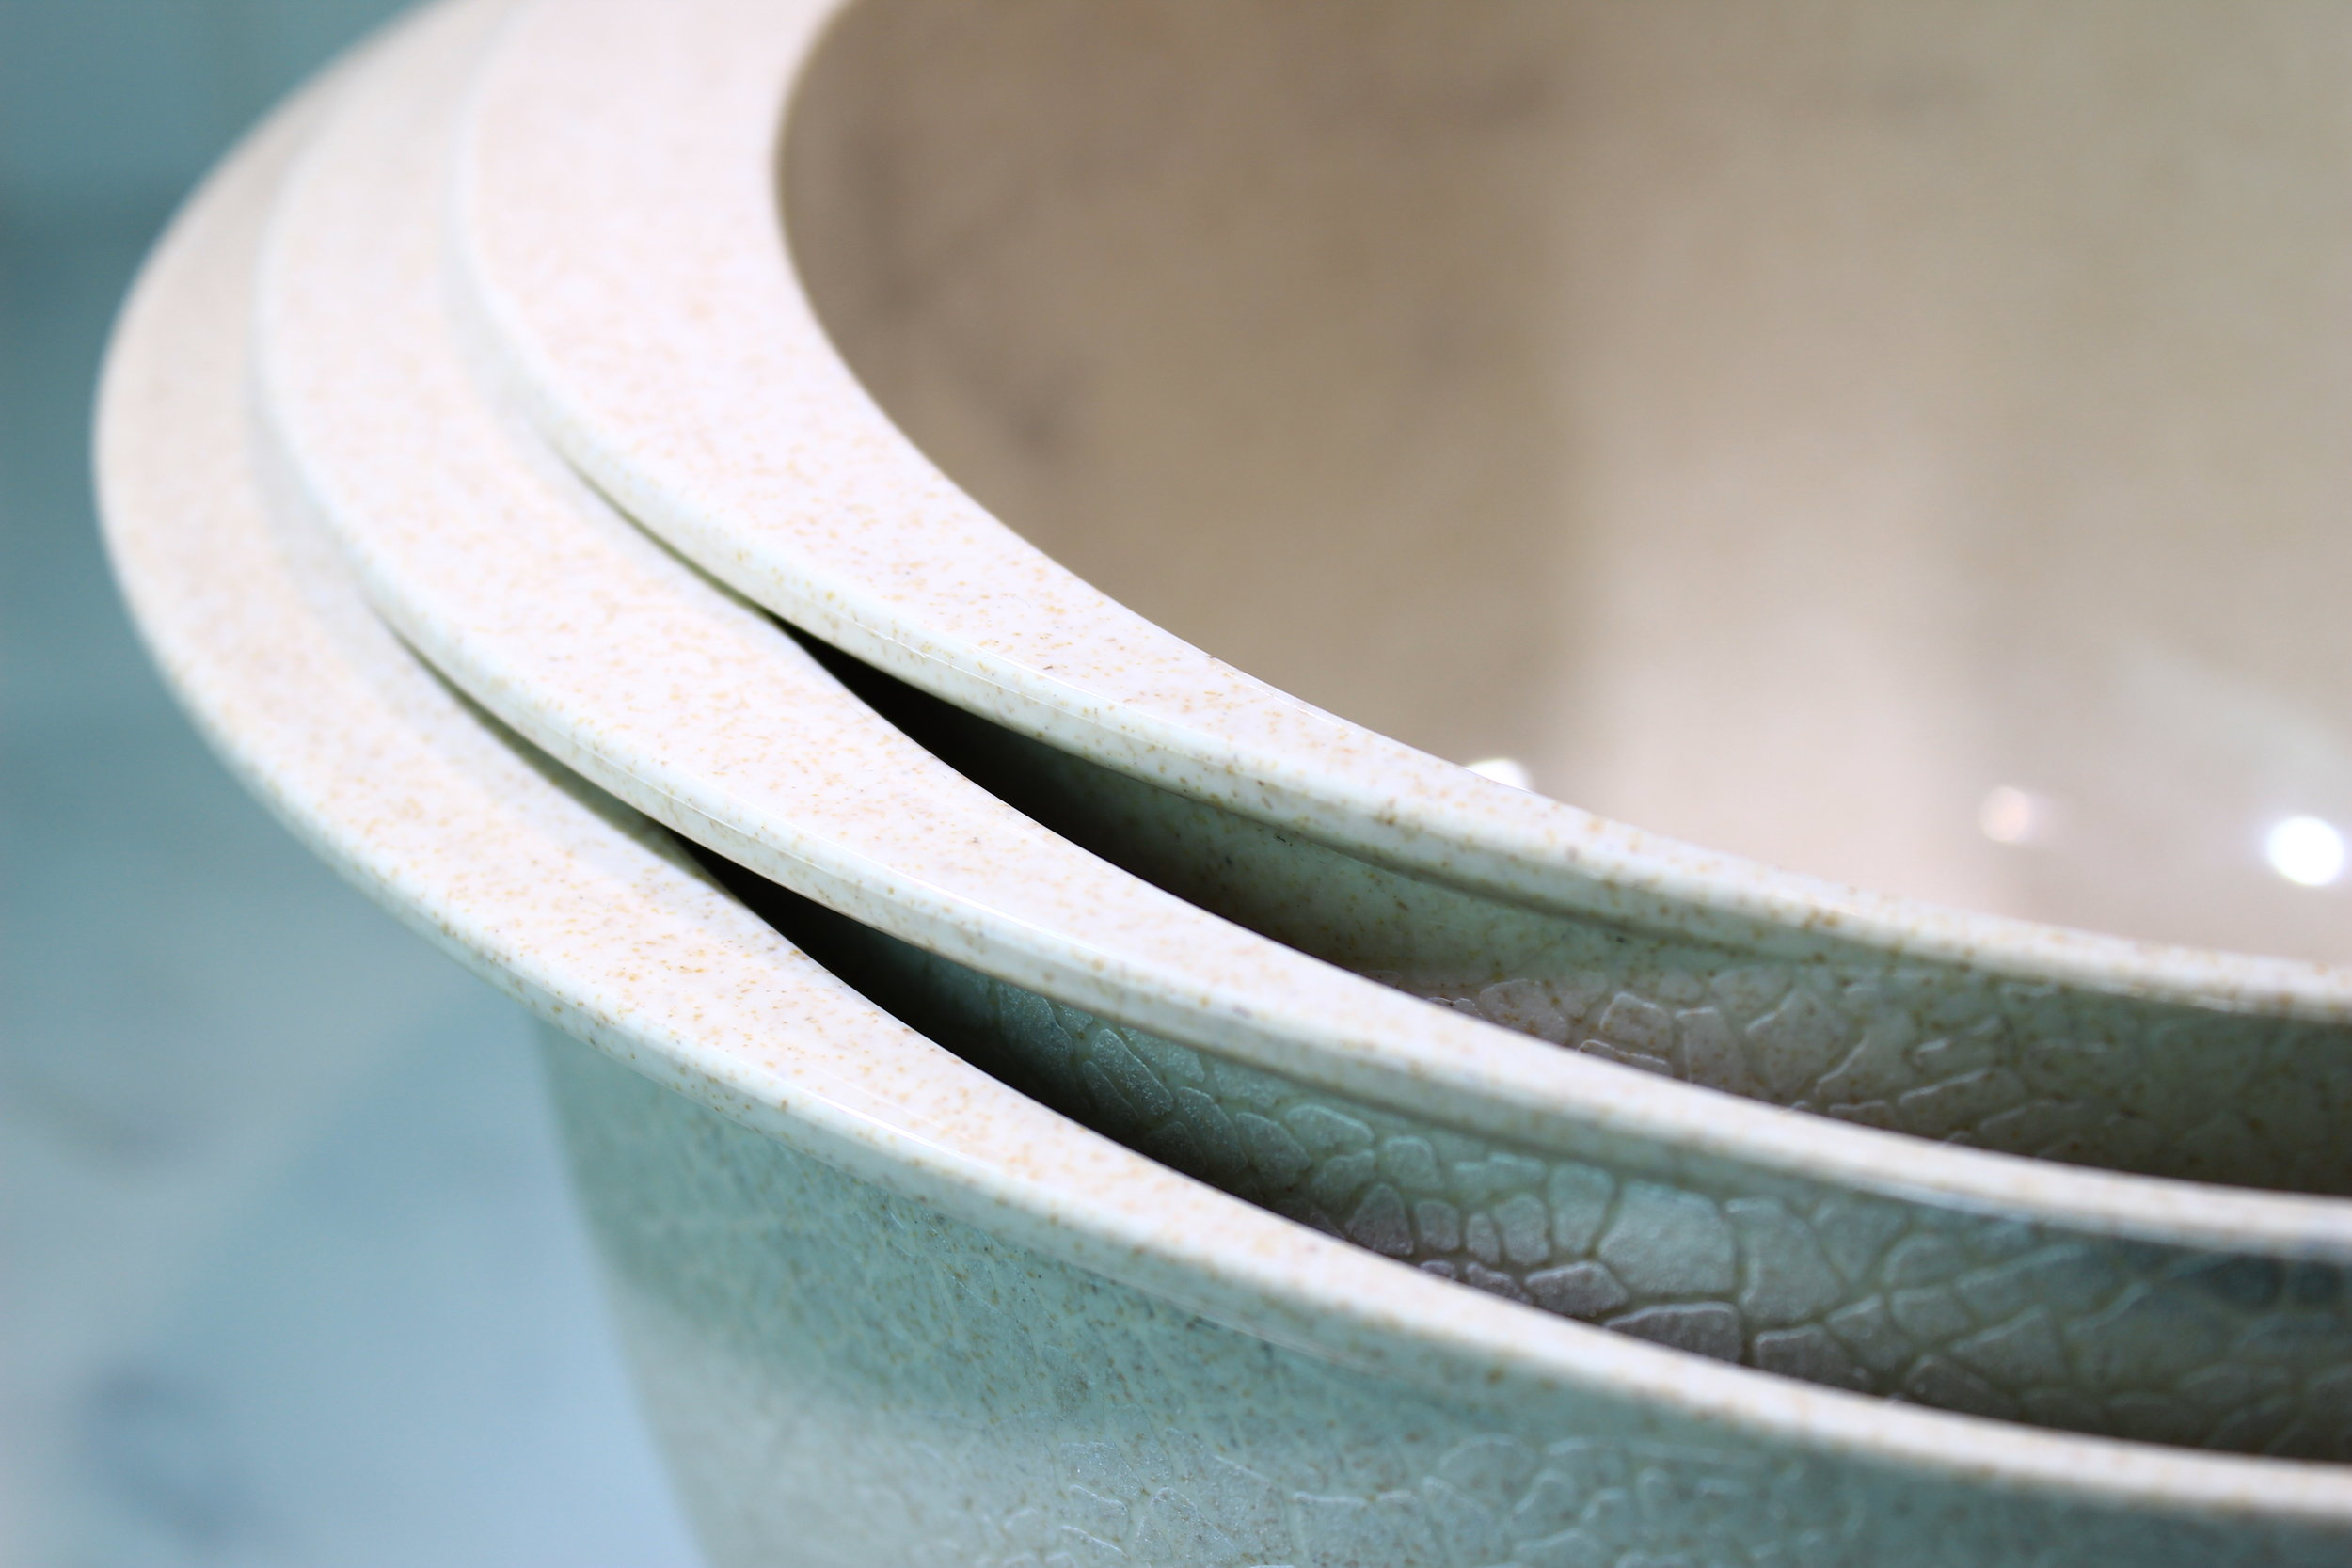 The new generation of Bamboozle kitchenware allows for unique design capabilities such as textured grips on the outside of the bowls, while keeping the inside smooth.